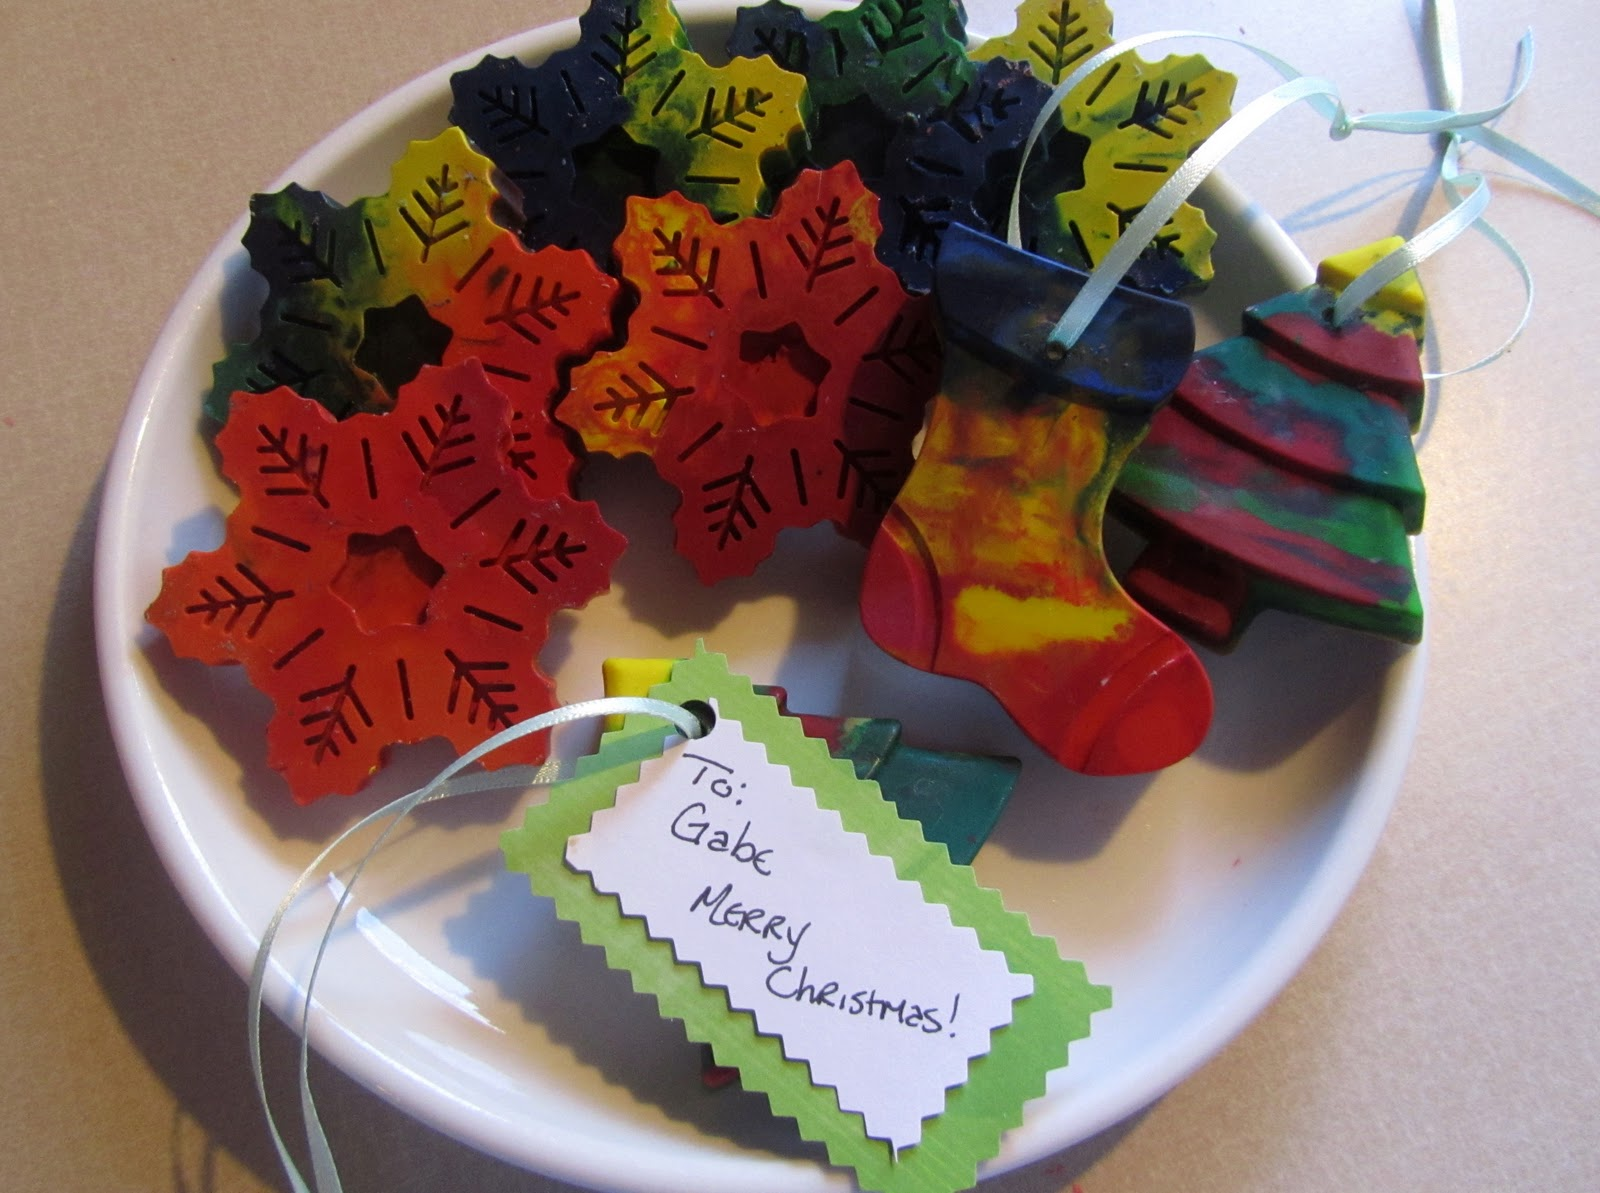 Making christmas ornaments with crayons - Chances Are You Ve Done This Or Seen Twenty Other Blogs Show You How And There S A Reason For The Popularity Of Crayon Making It S Easy